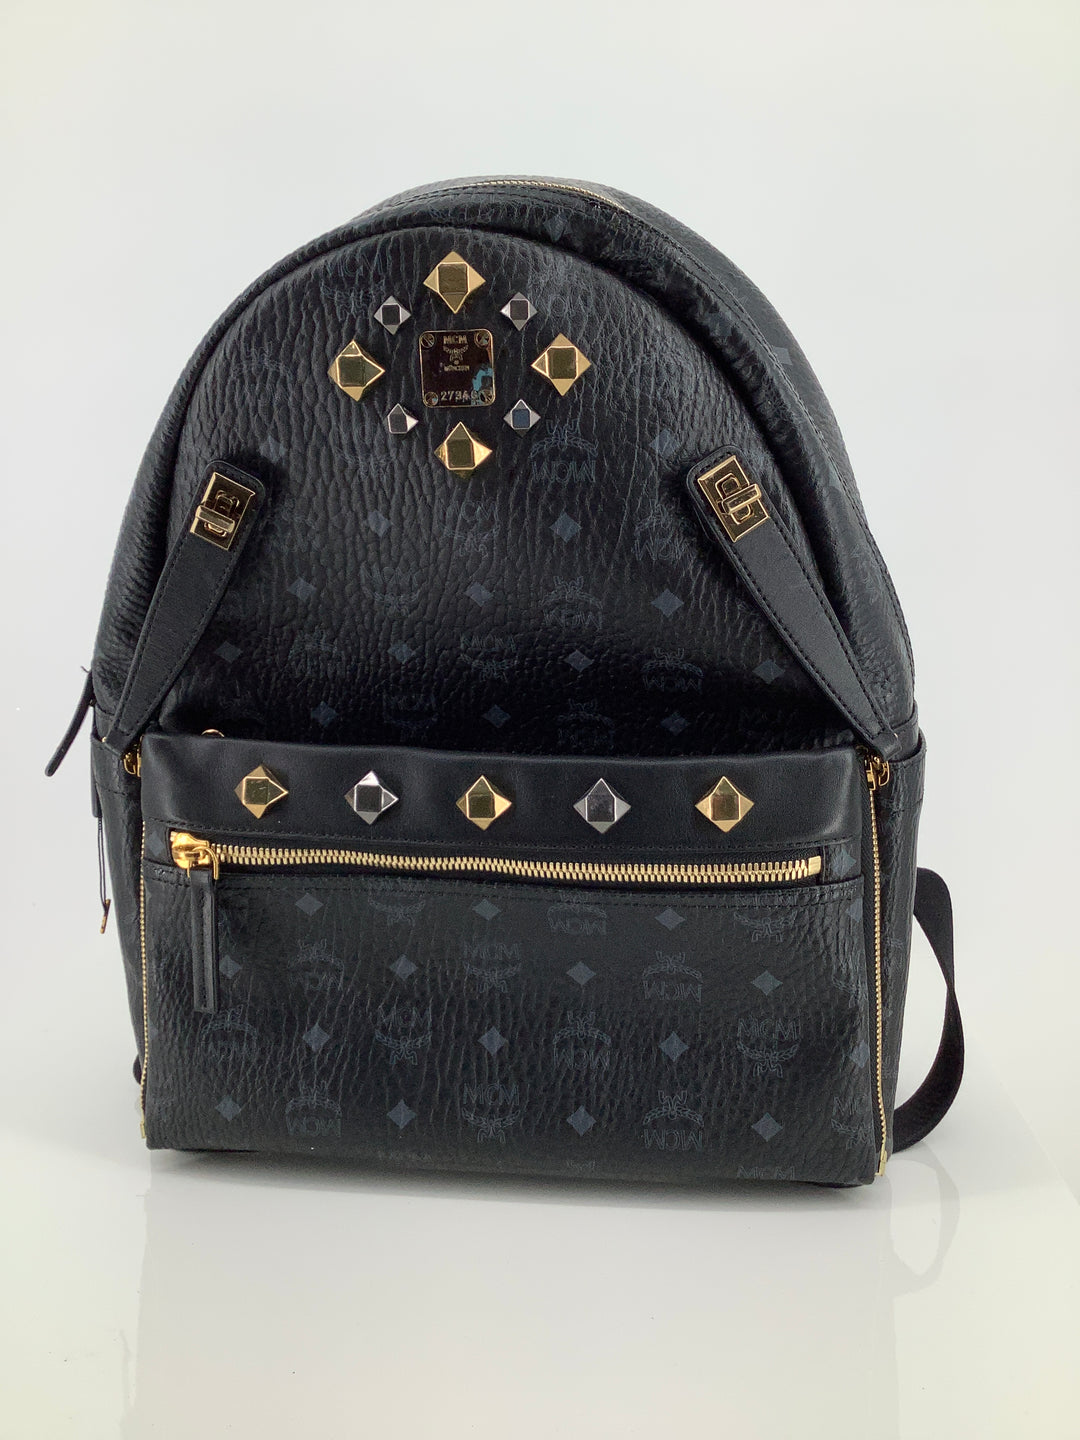 Primary Photo - BRAND: MCM , STYLE: BACKPACK DUAL STARK VISETOS BACKPACK , COLOR: BLACK , SIZE: LARGE , SKU: 105-3221-11130